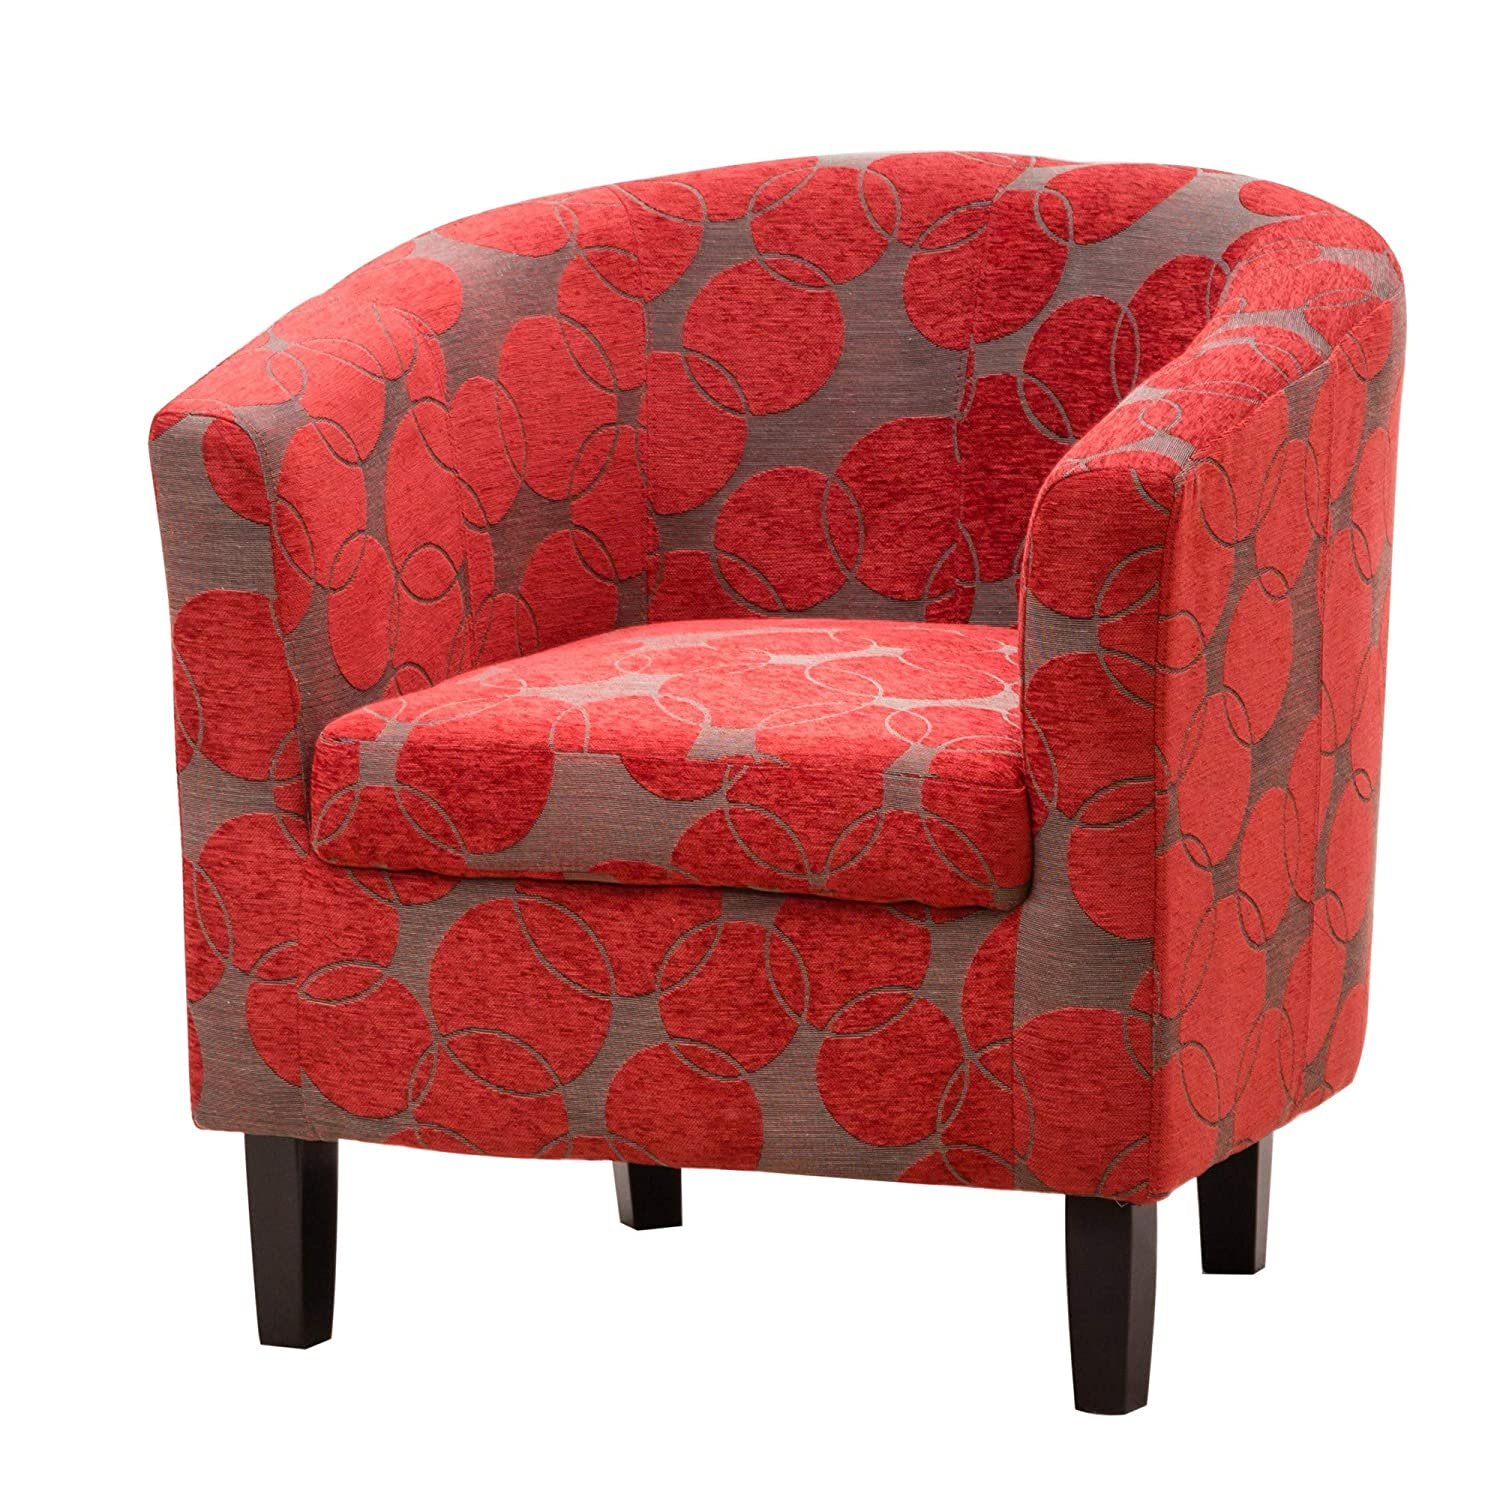 Sofa Collection Benissa Funky Tub Chair/Armchair Seating, Fabric, Red, 66 x 71 x 77 cm 5060363582228